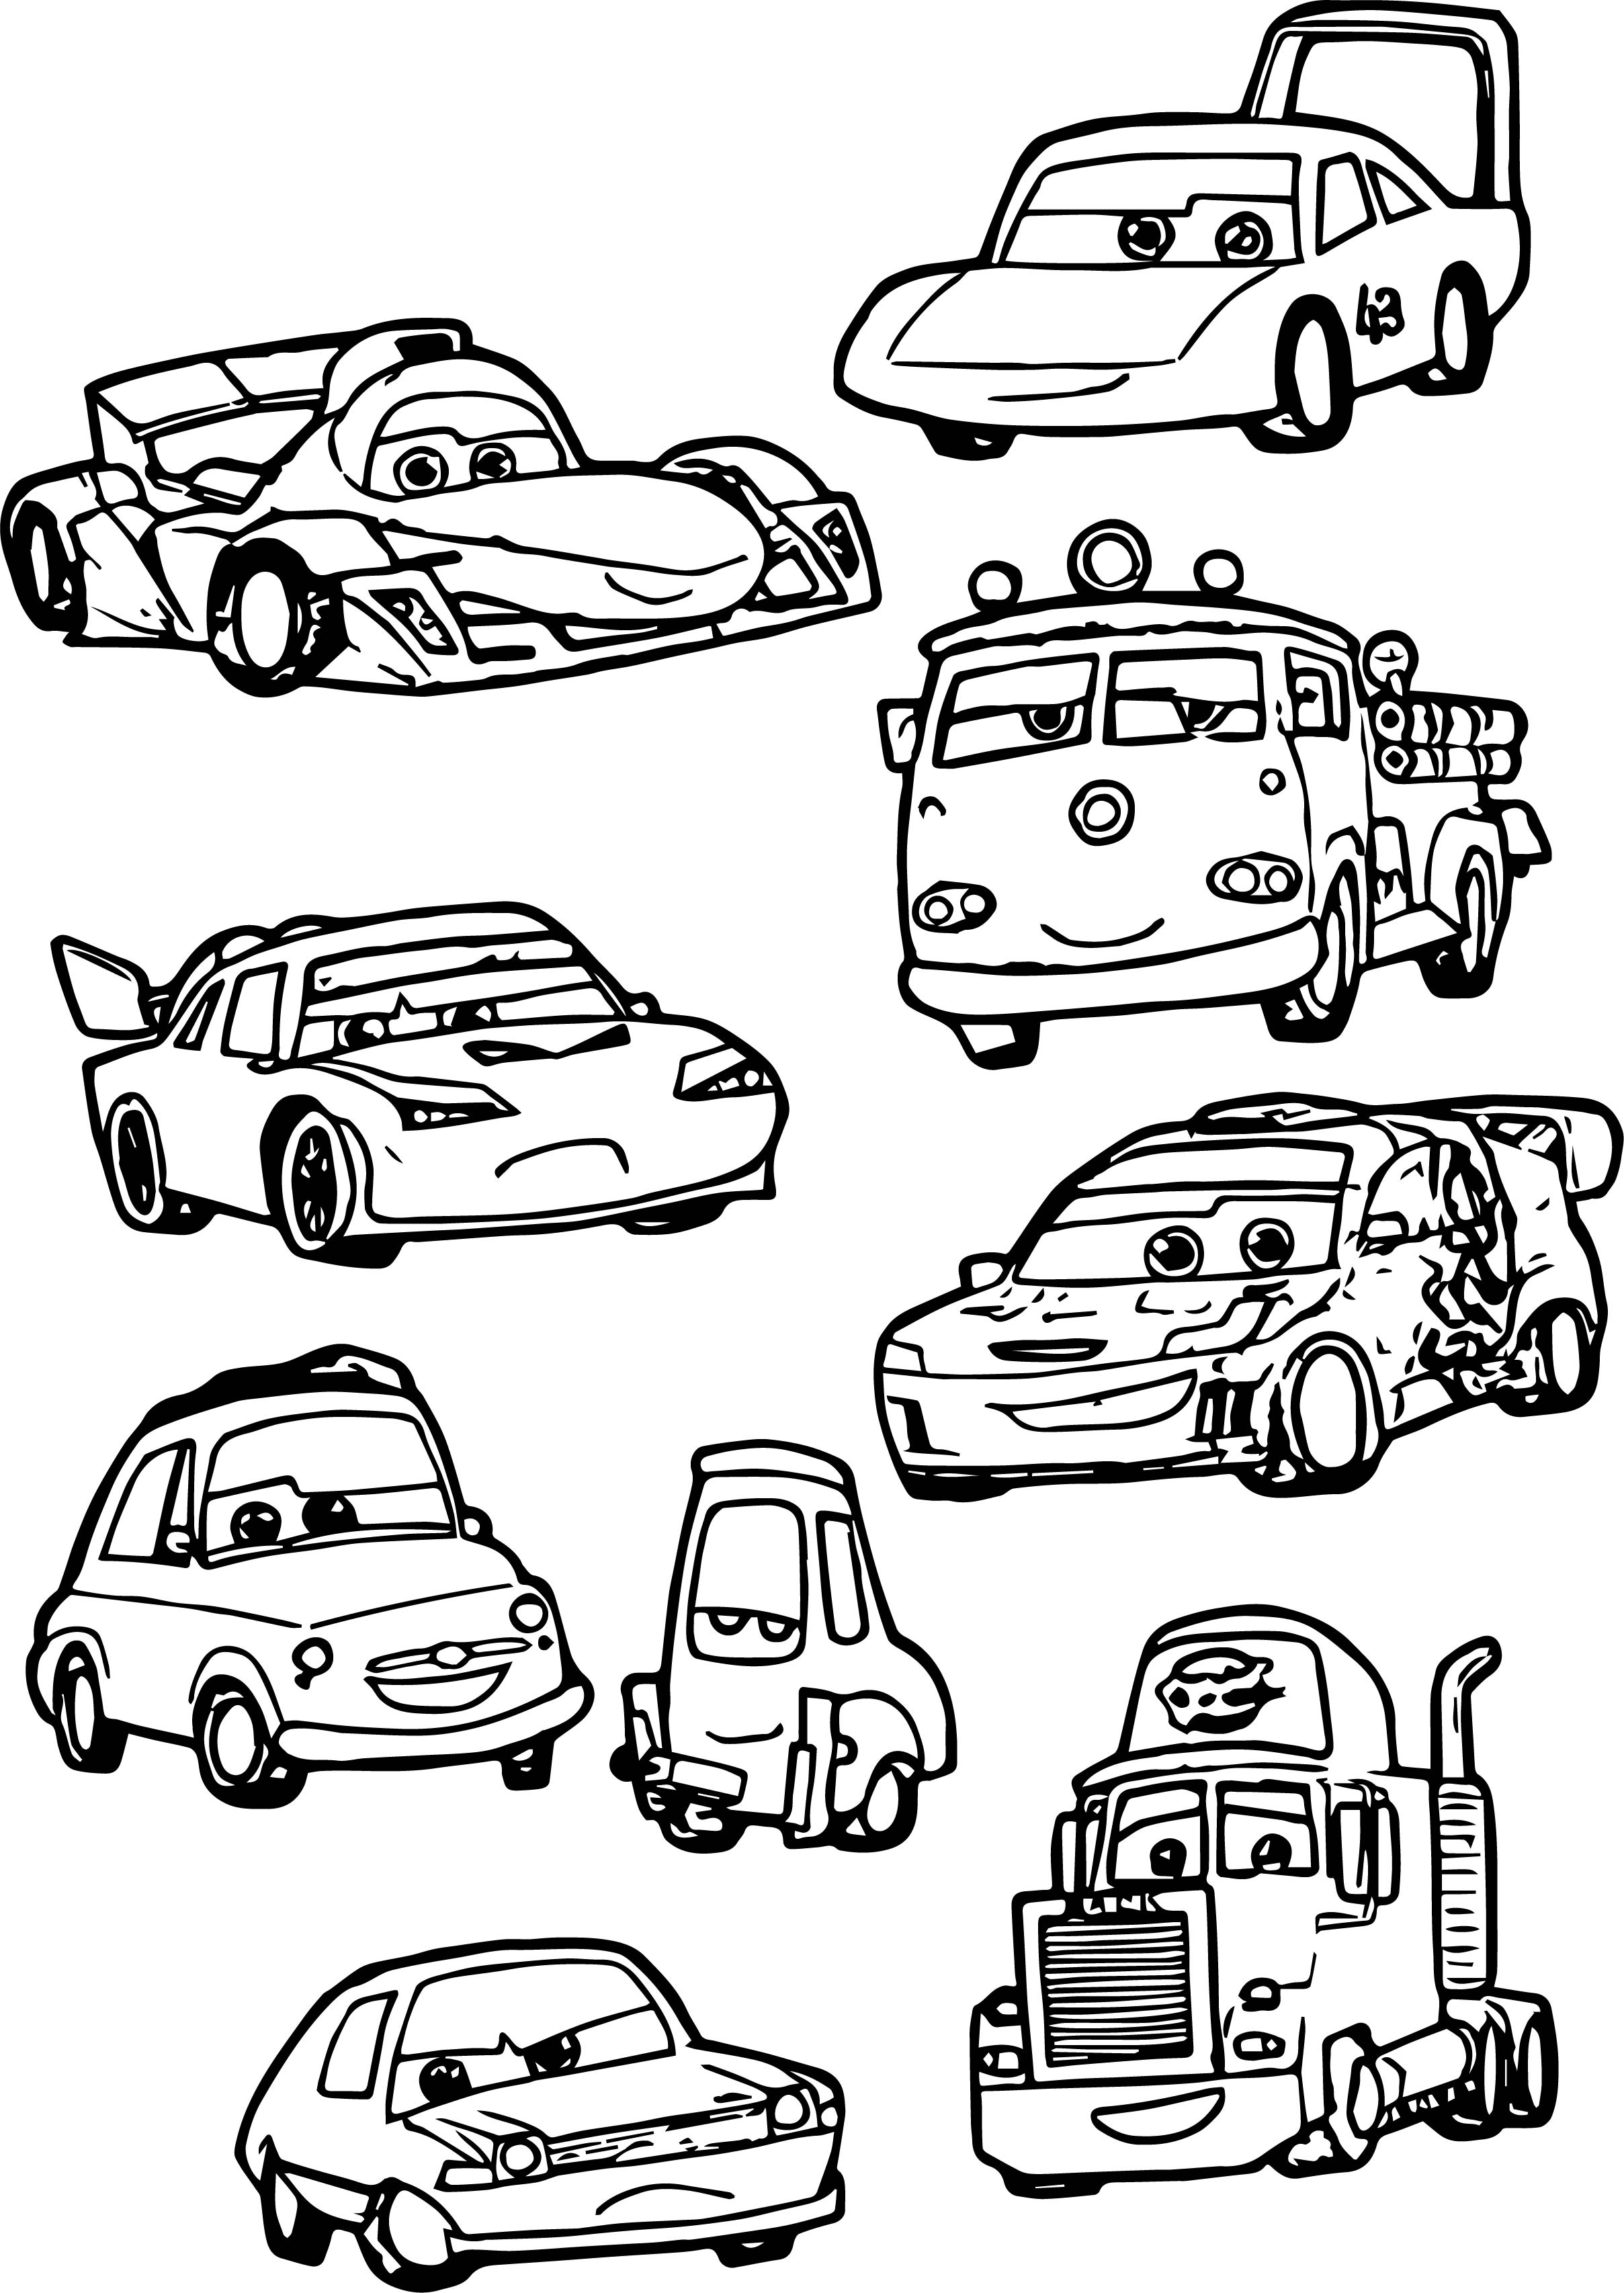 Just Chibi Cars Characters Coloring Page | Wecoloringpage.com